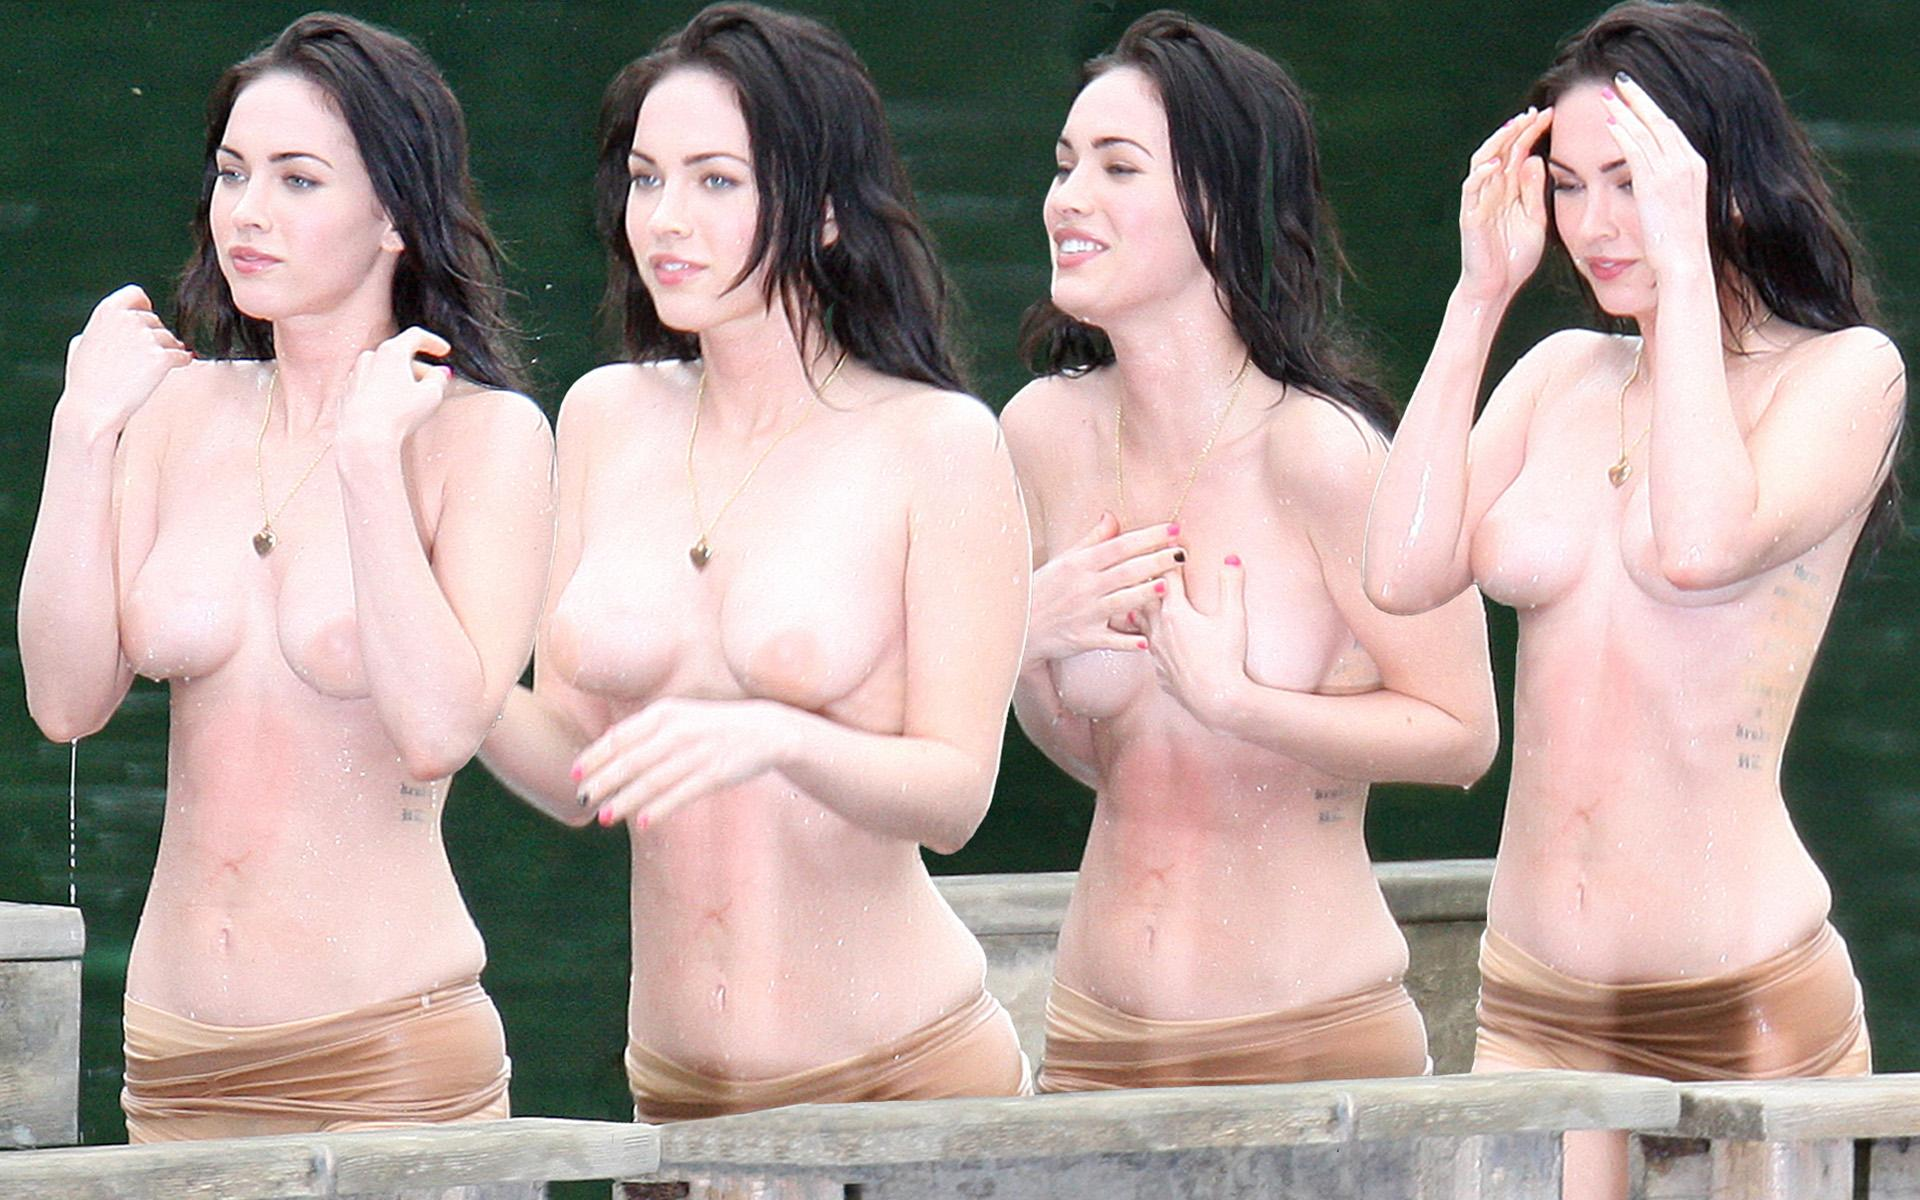 Megan Fox Reveals She Has Obsessive Compulsive Disorder Threatens To Harm Pap Over Topless Photos